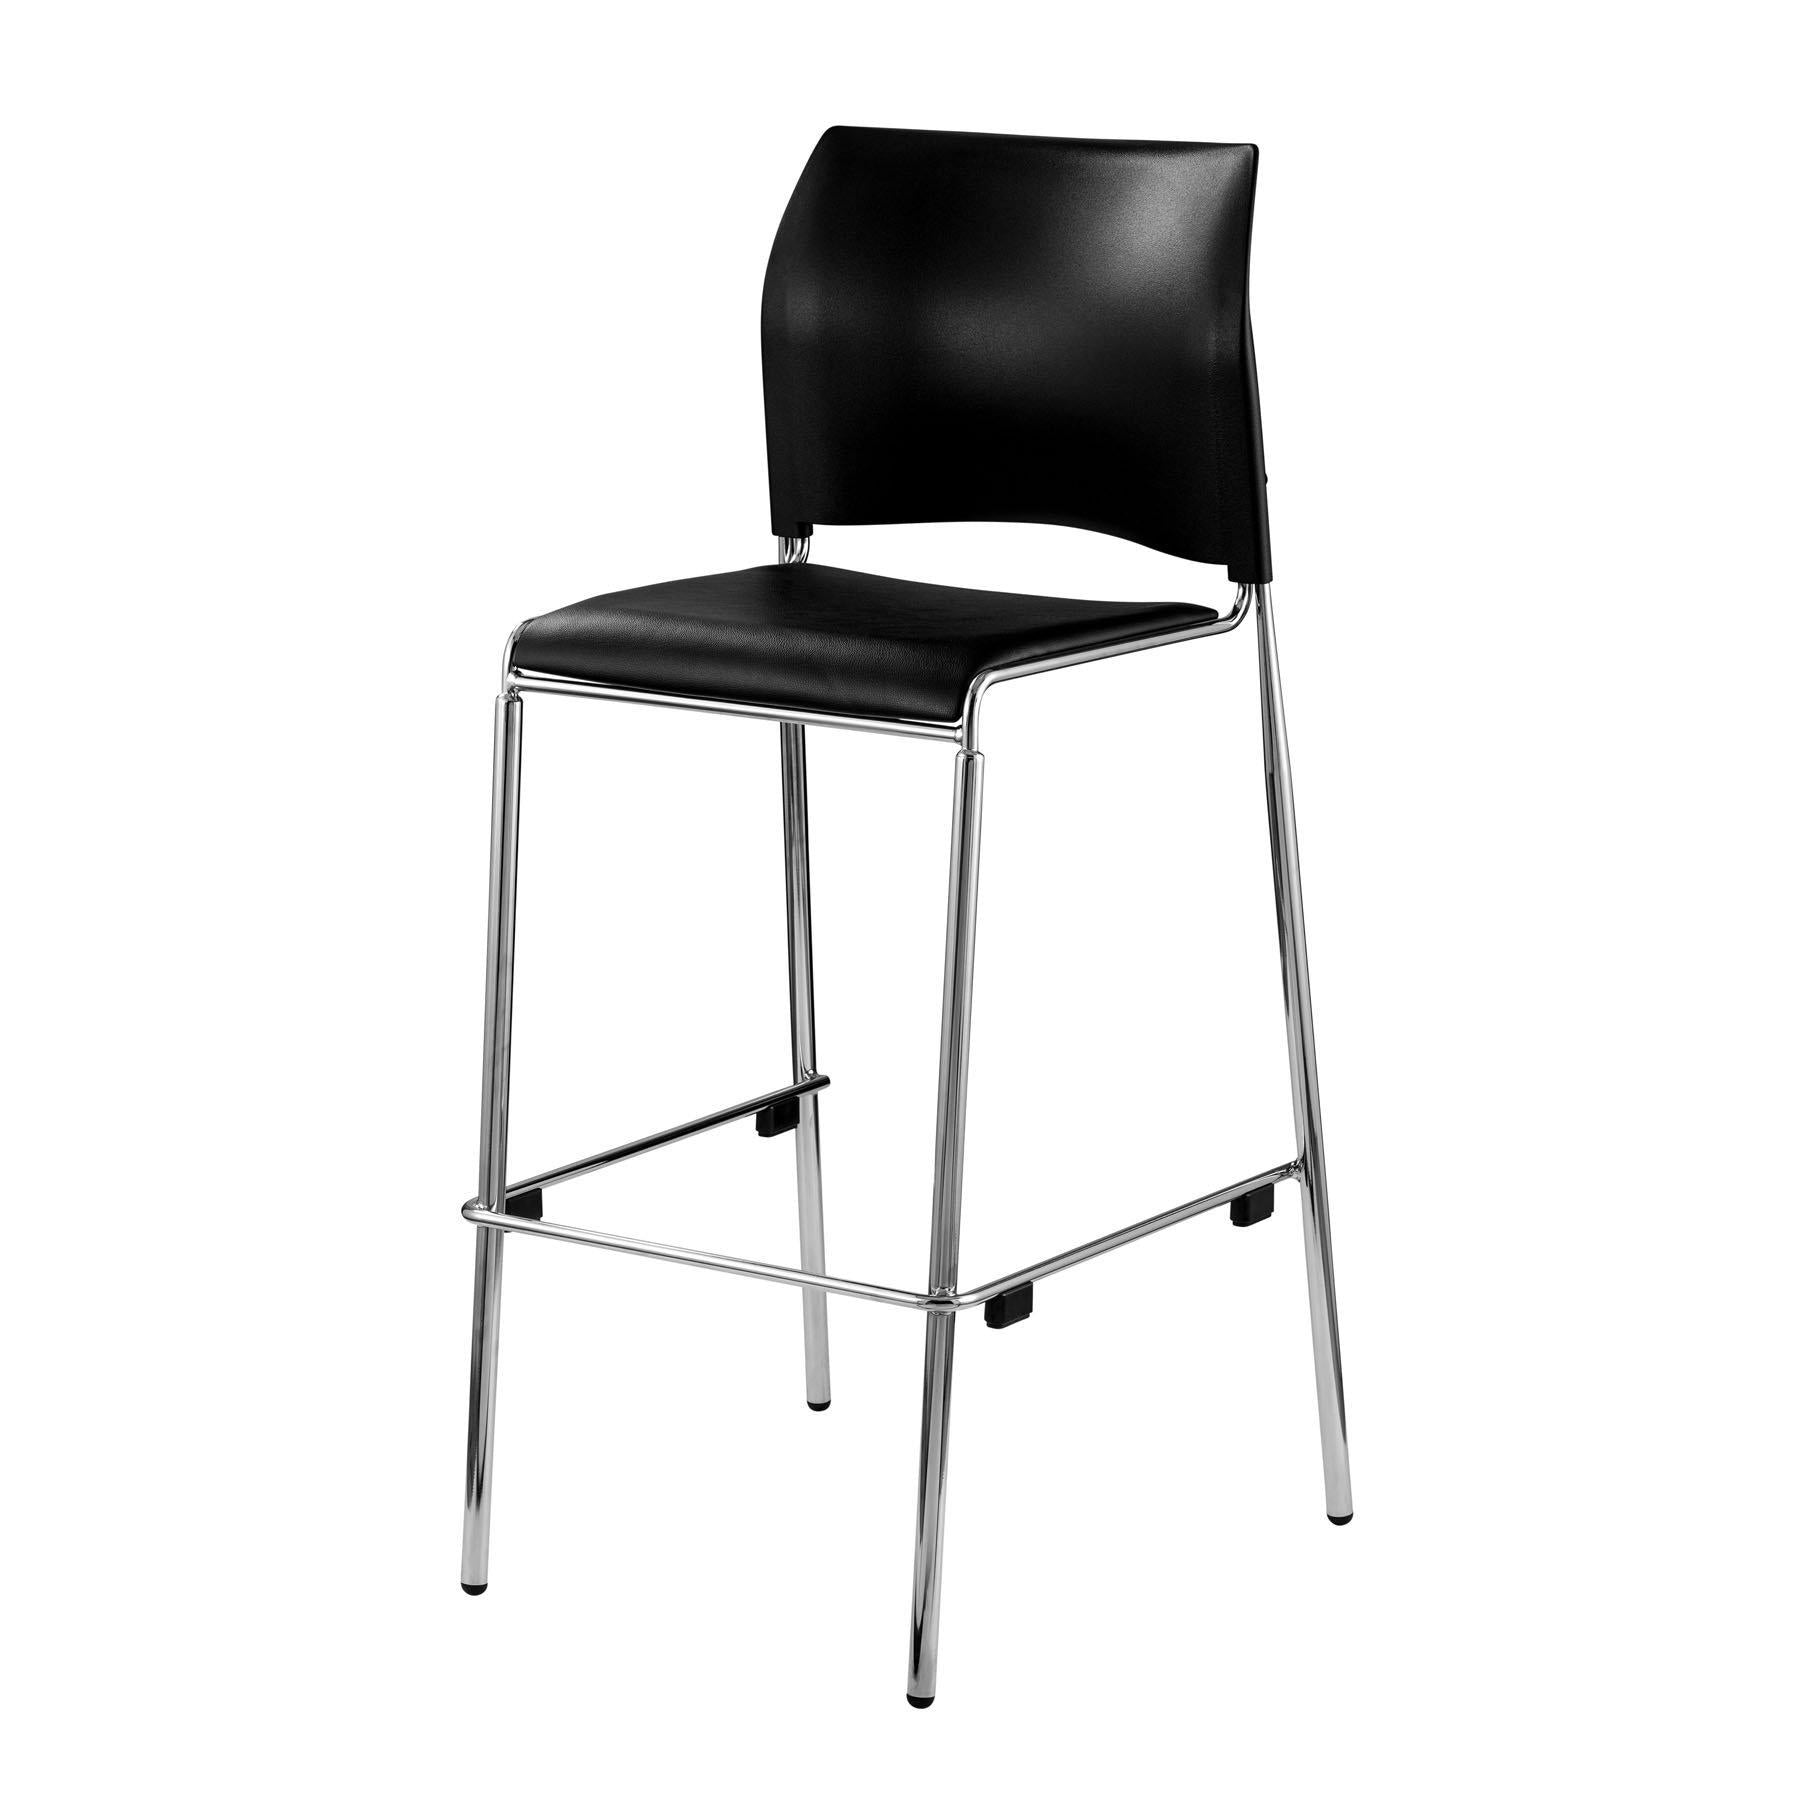 Cafetorium Bar Stool, Black Vinyl Seat, Black Plastic Back, Chrome Frame